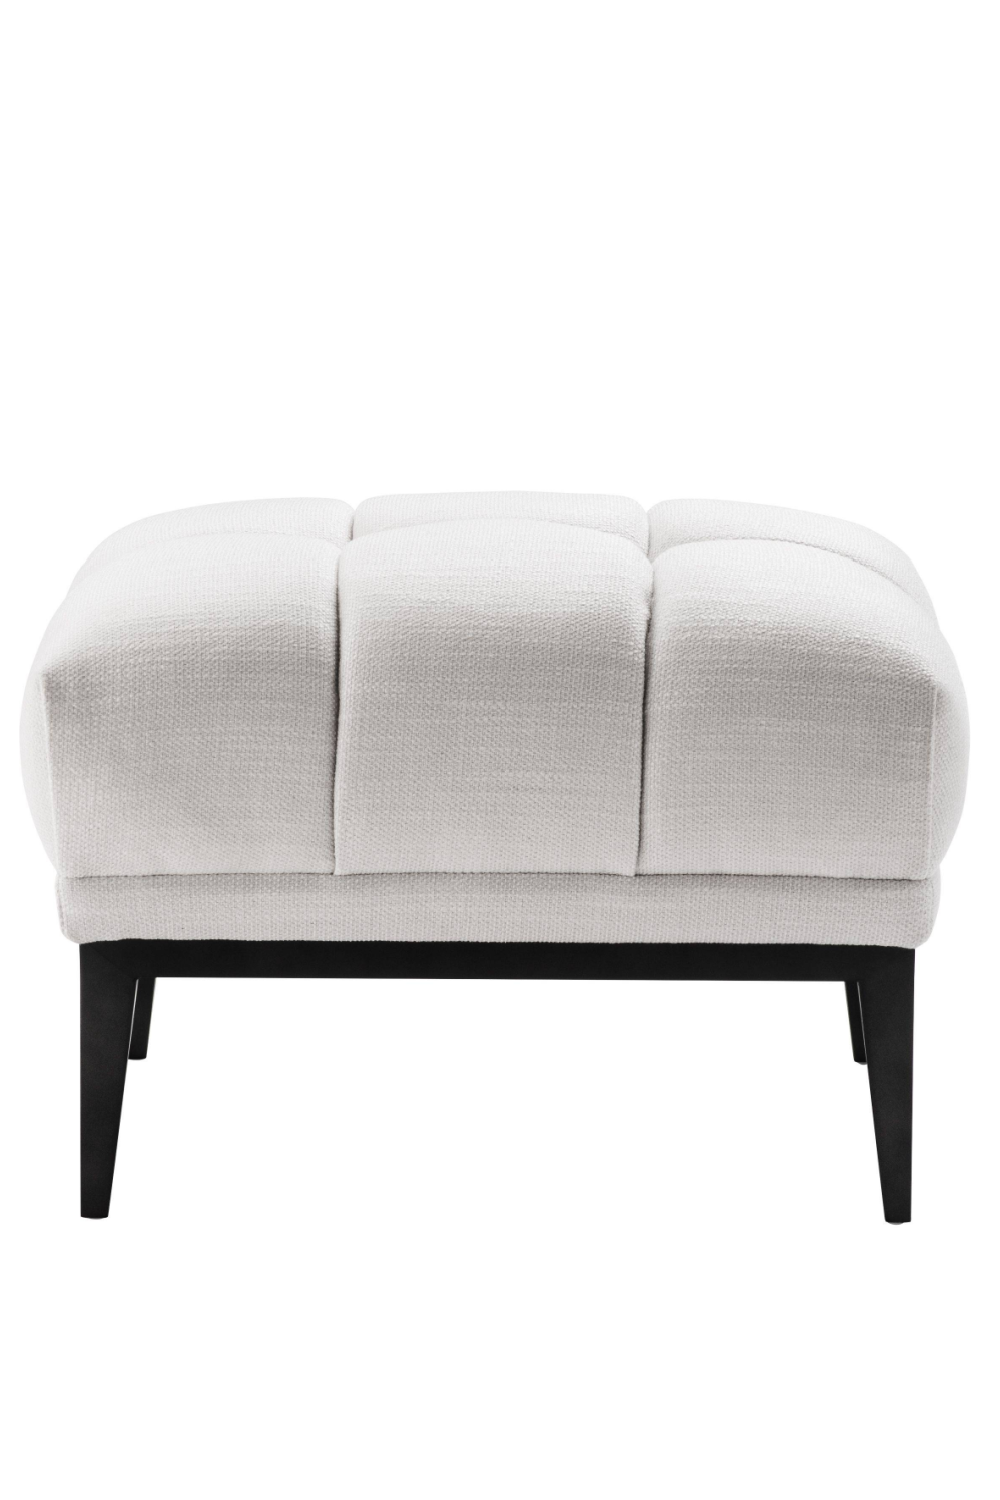 White Tufted Accent Stool | Eichholtz Aurelio